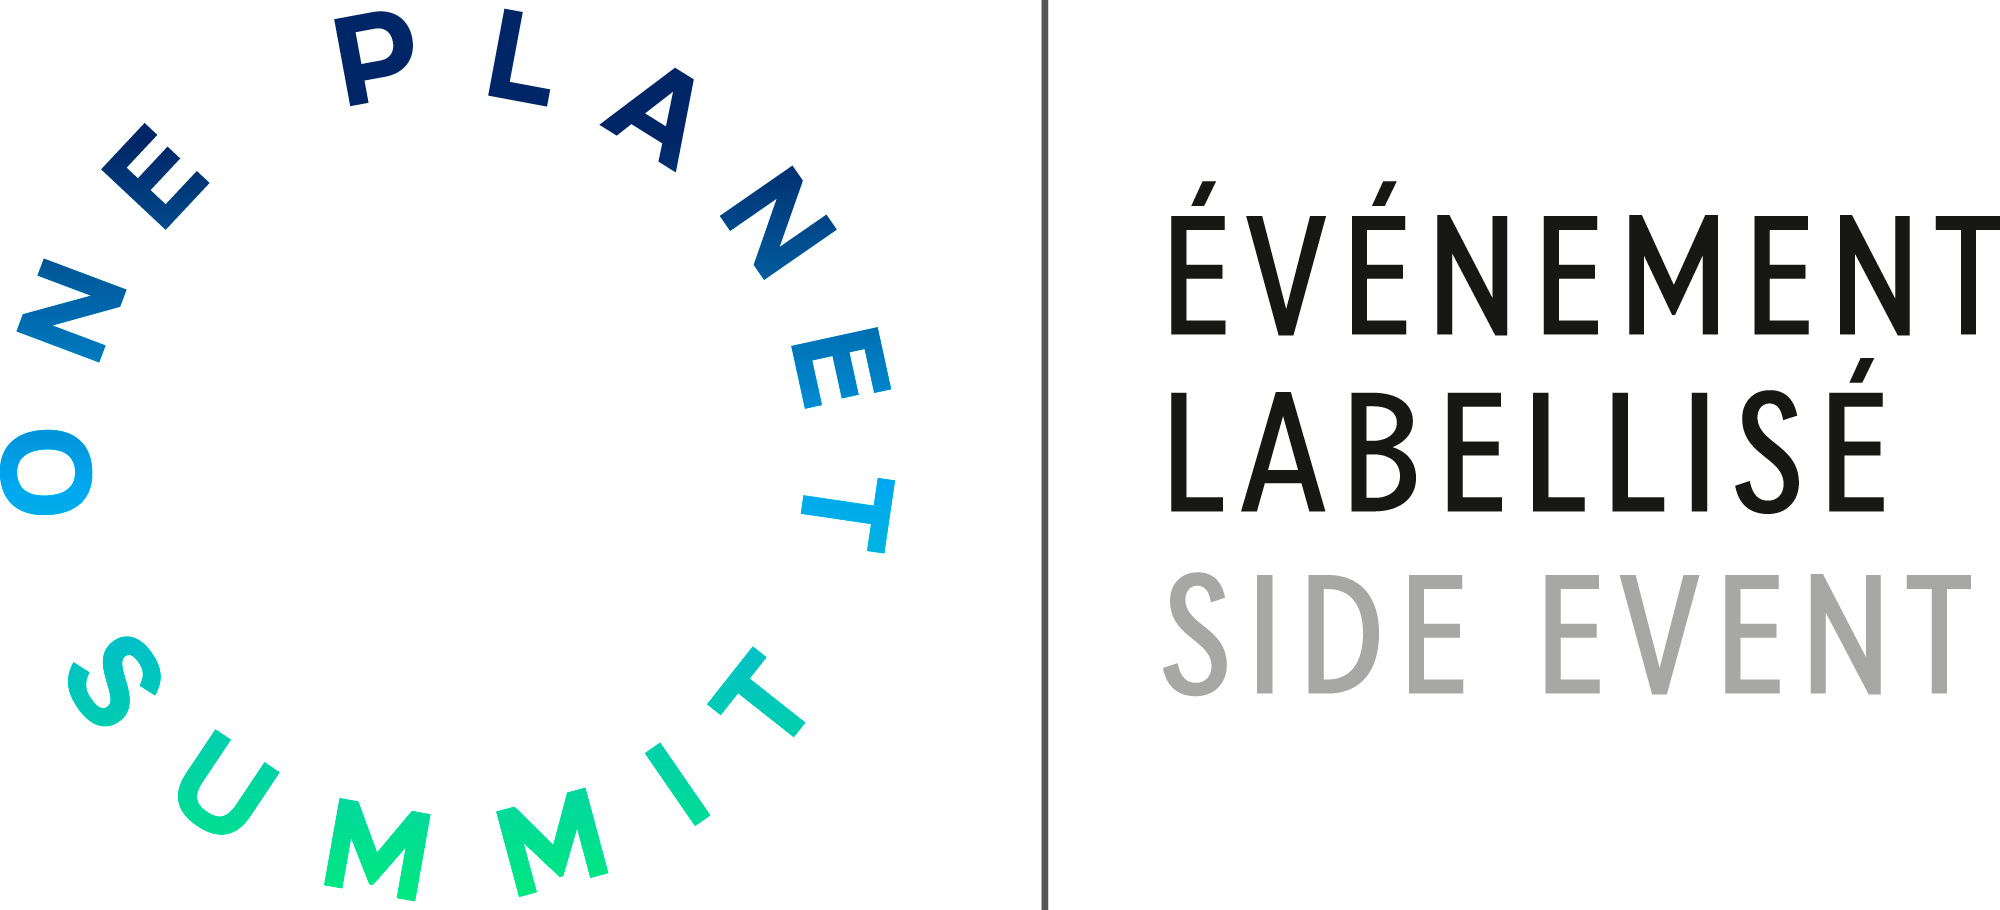 Programme side events One Planet Summit